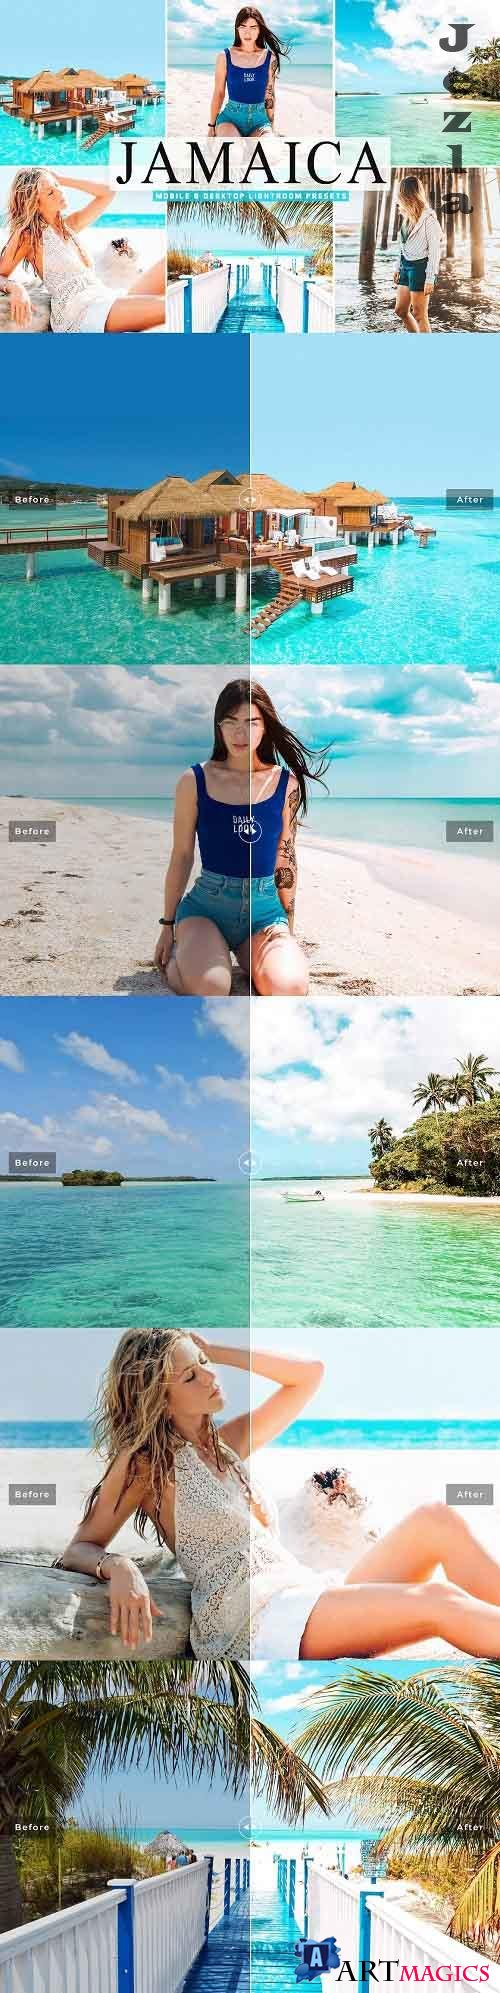 Jamaica Pro Lightroom Presets - 5375593 - Mobile & Desktop